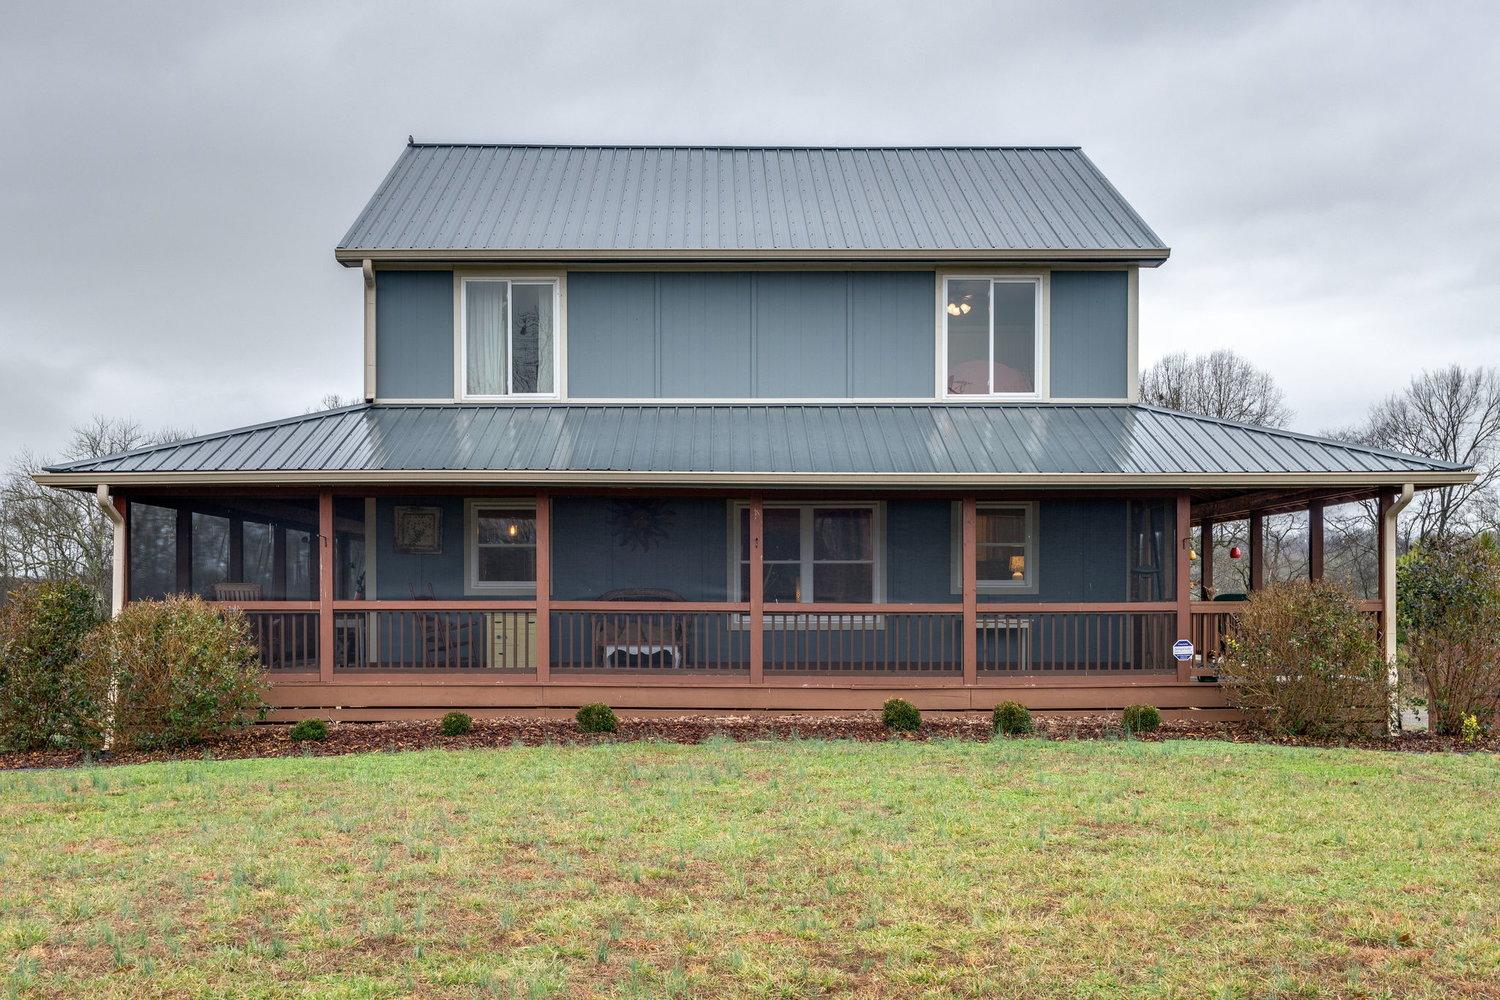 212 Big Springs Rd, Lebanon, TN   PURCHASED PRICE $430,000  4 BEDS · 4.5 BATHS · 2848 SQF